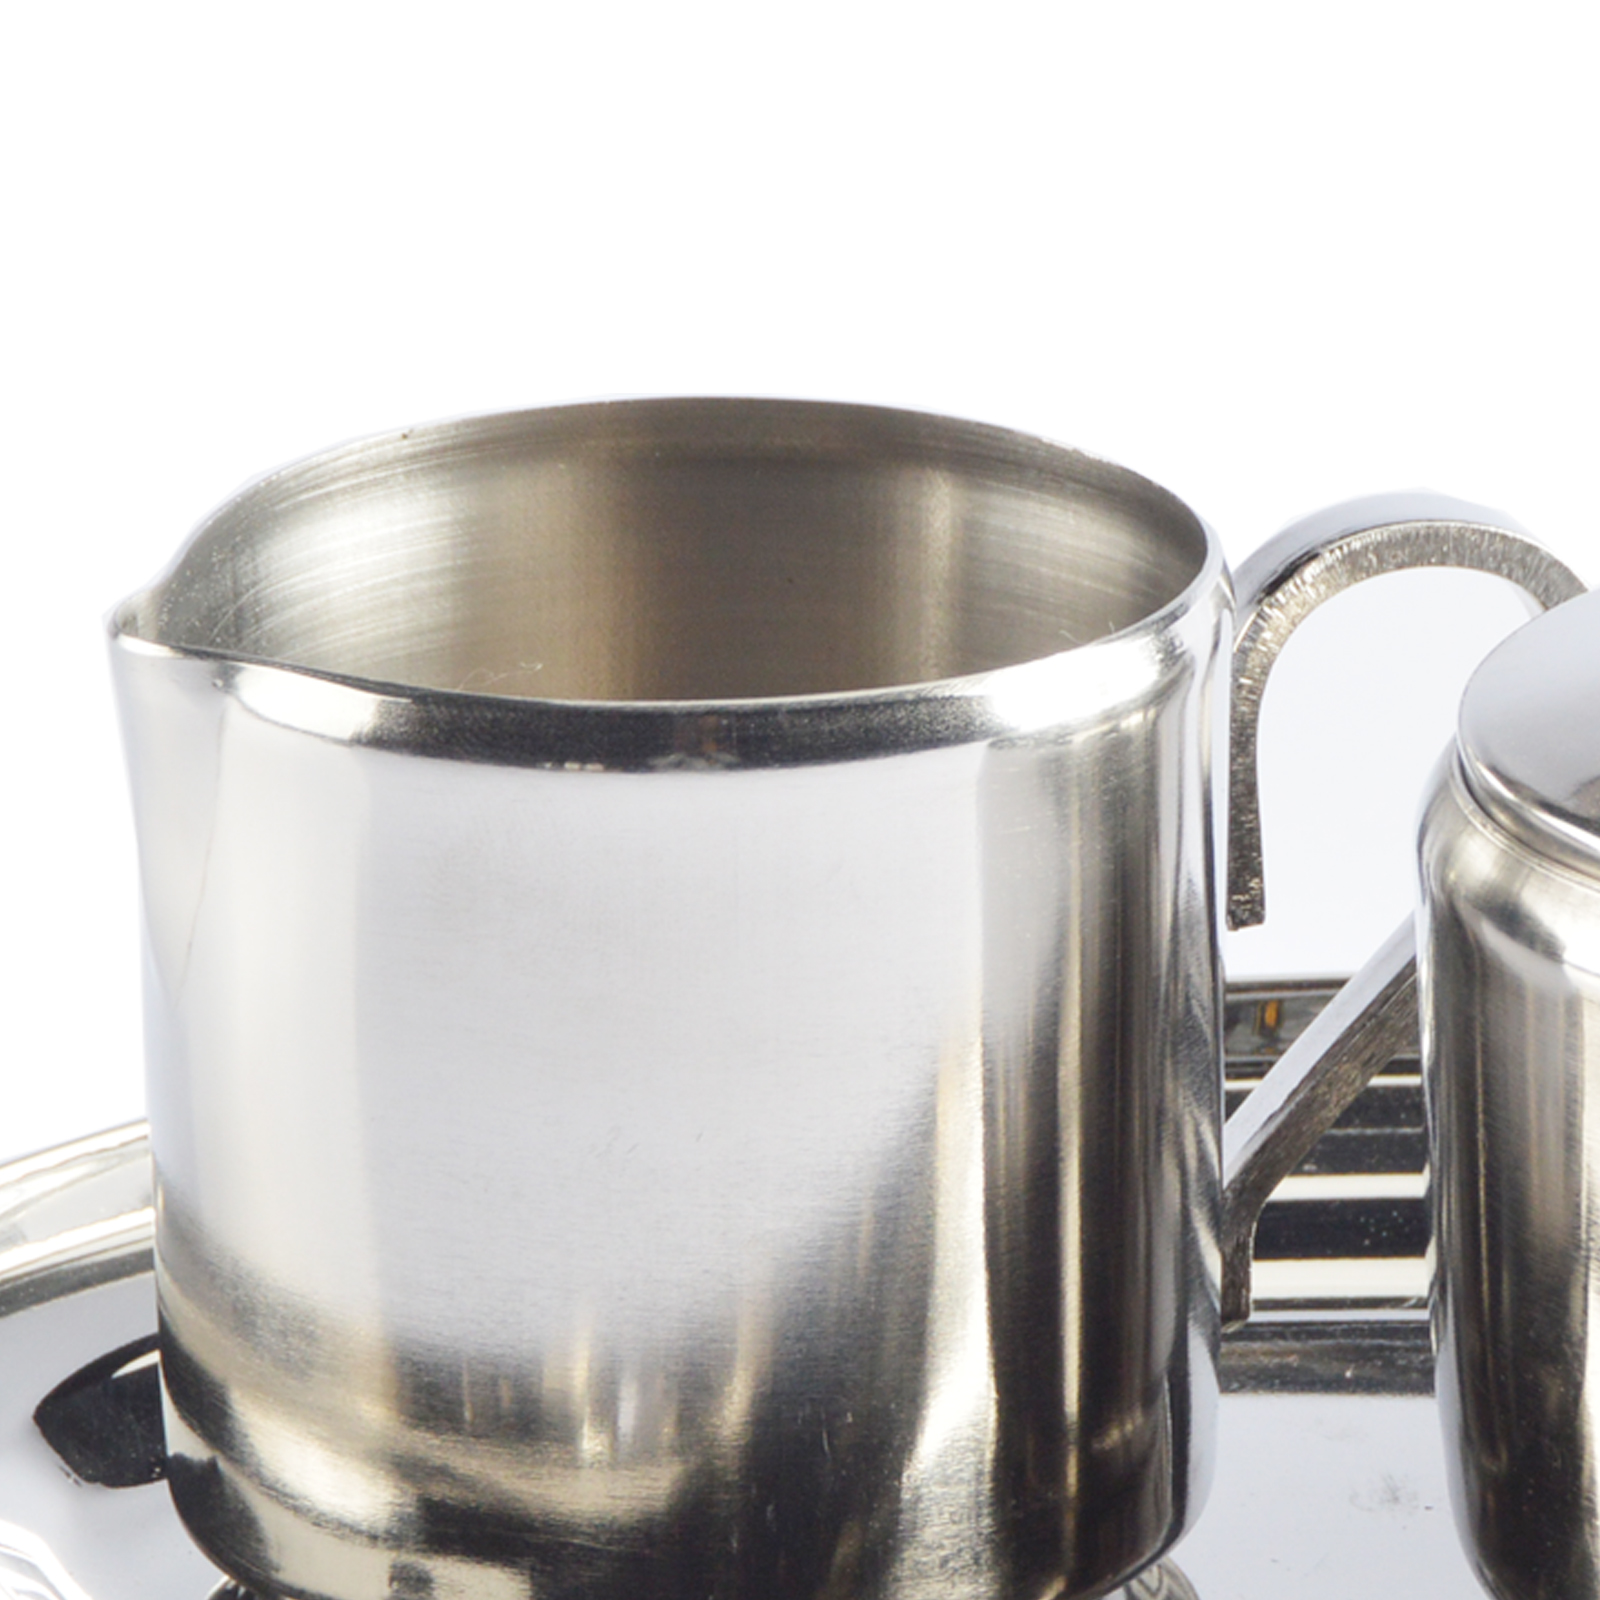 lait jeu de sucre acier inox pot petit pot pot sucre sugar bowl ebay. Black Bedroom Furniture Sets. Home Design Ideas